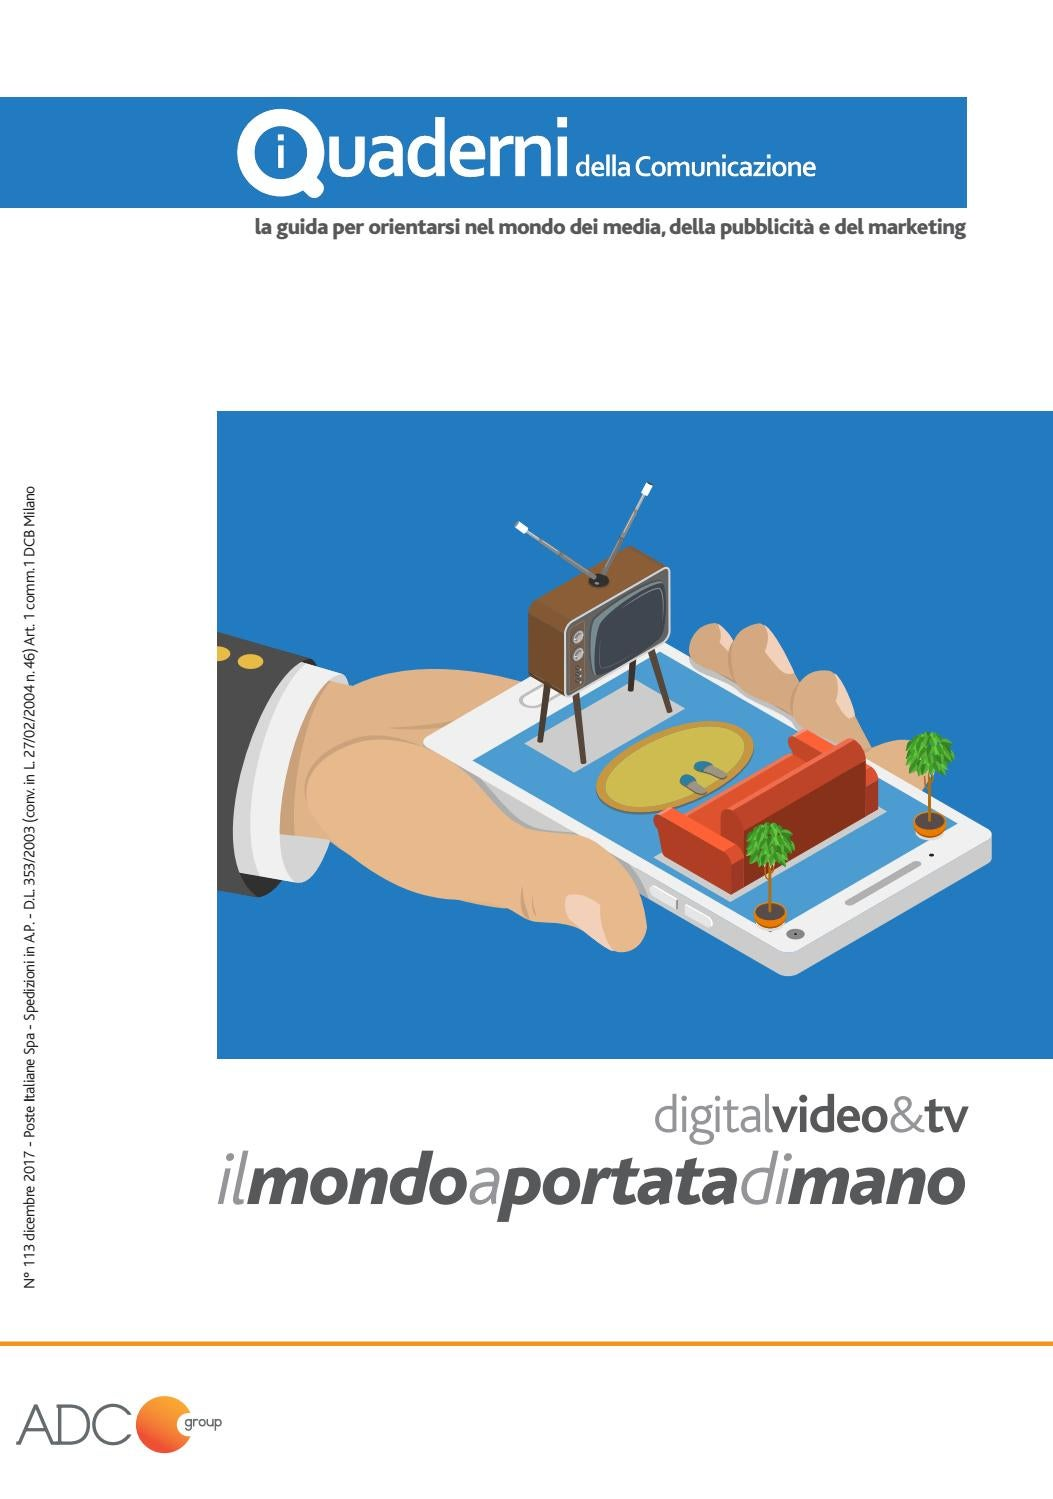 I Quaderni Della Comunicazione 2017 Digital Video Tv By Adc Group Issuu